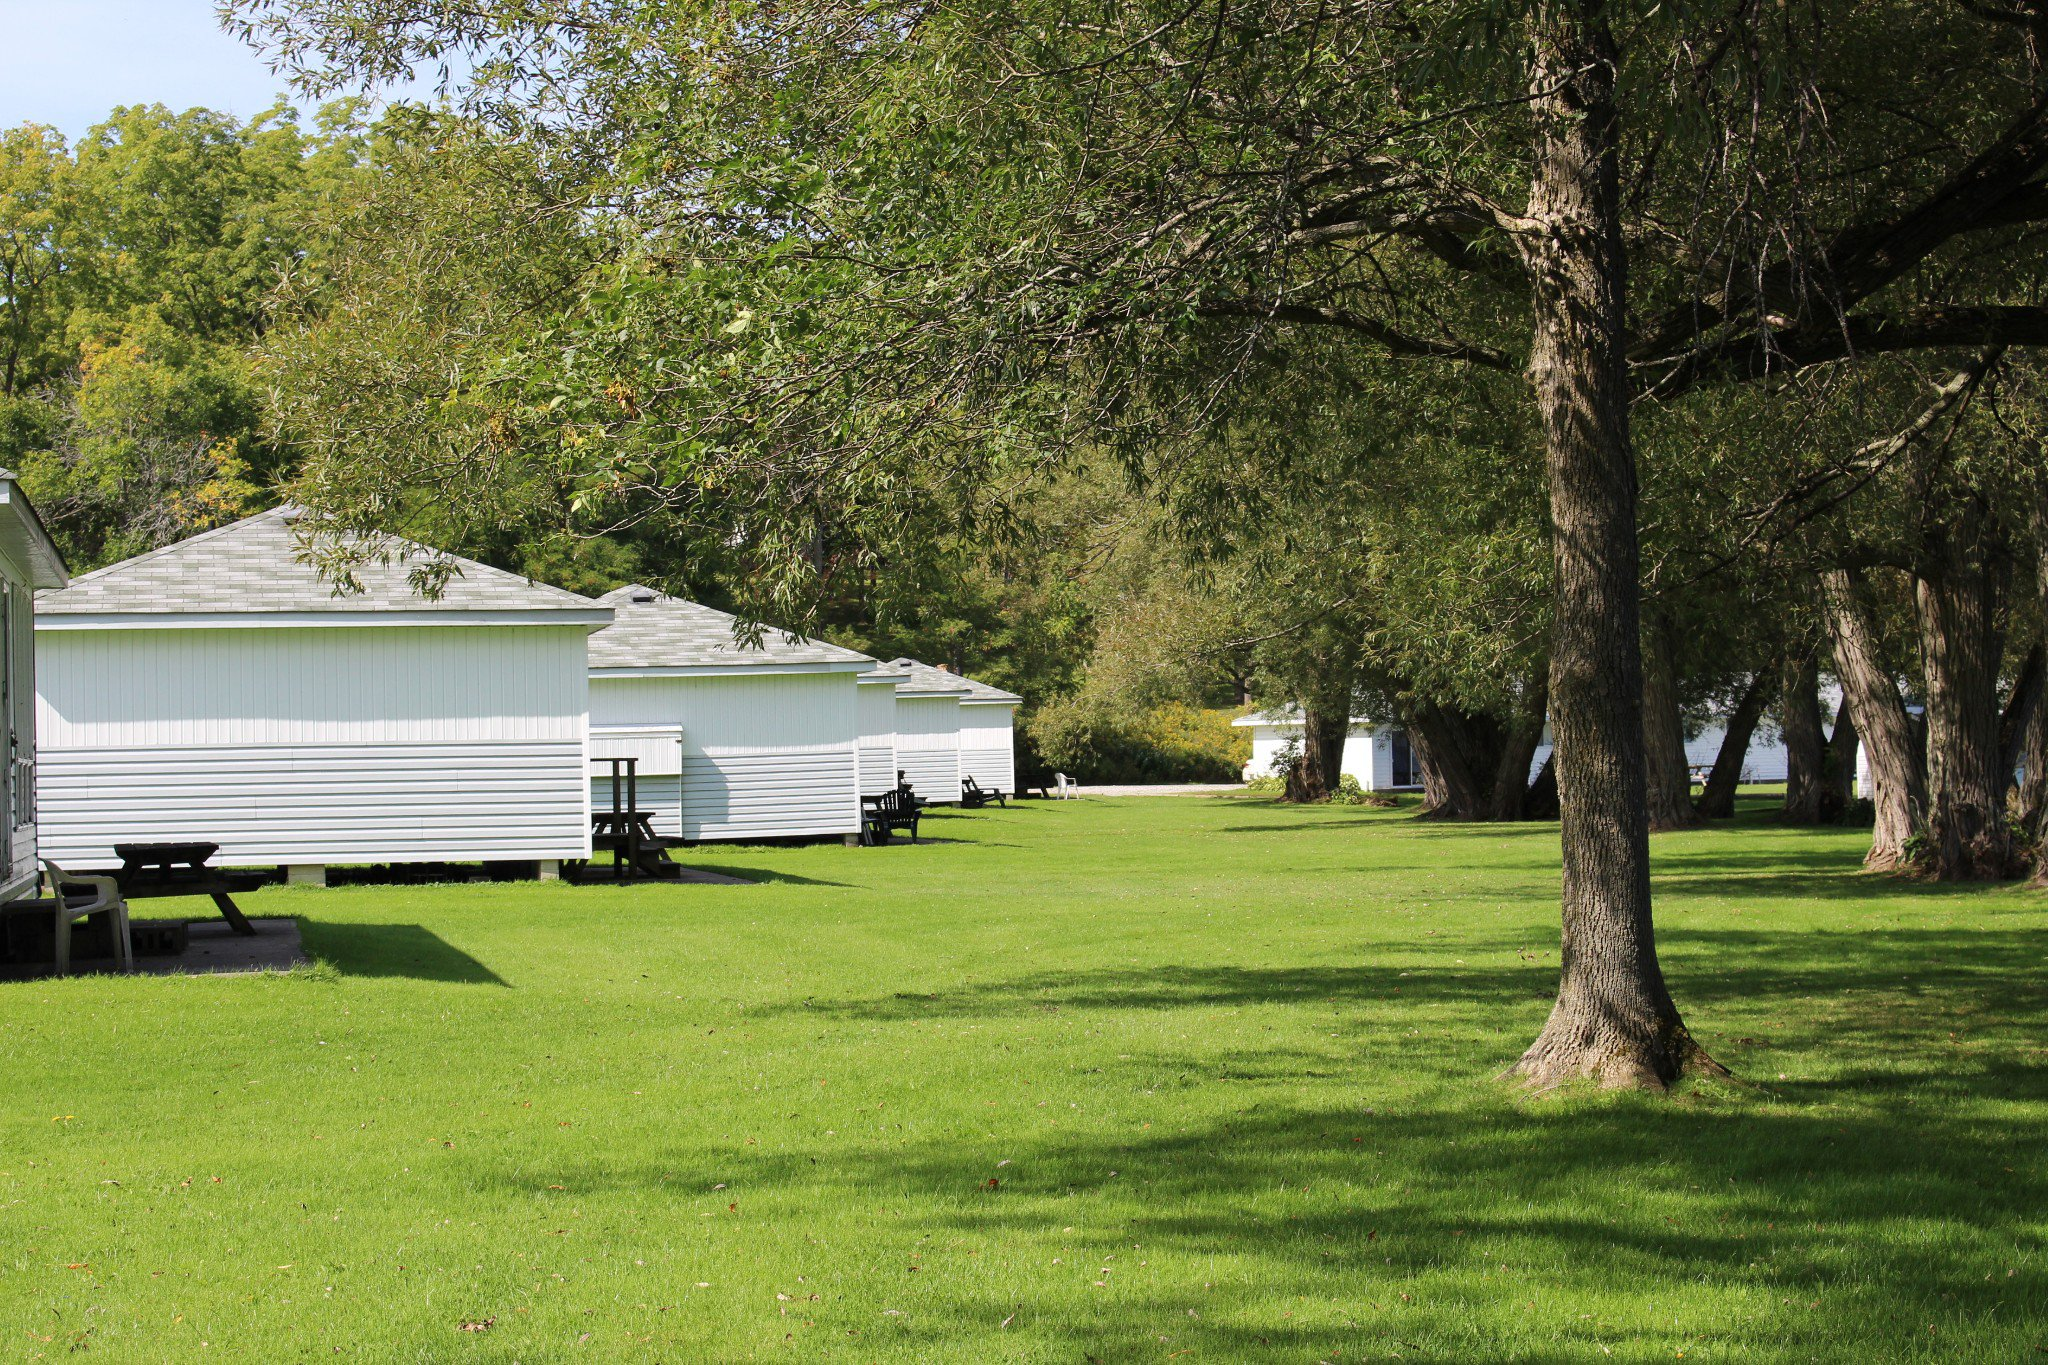 Photo 25: Photos: 6010 Rice Lake Scenic Drive in Harwood: Other for sale : MLS®# 223405